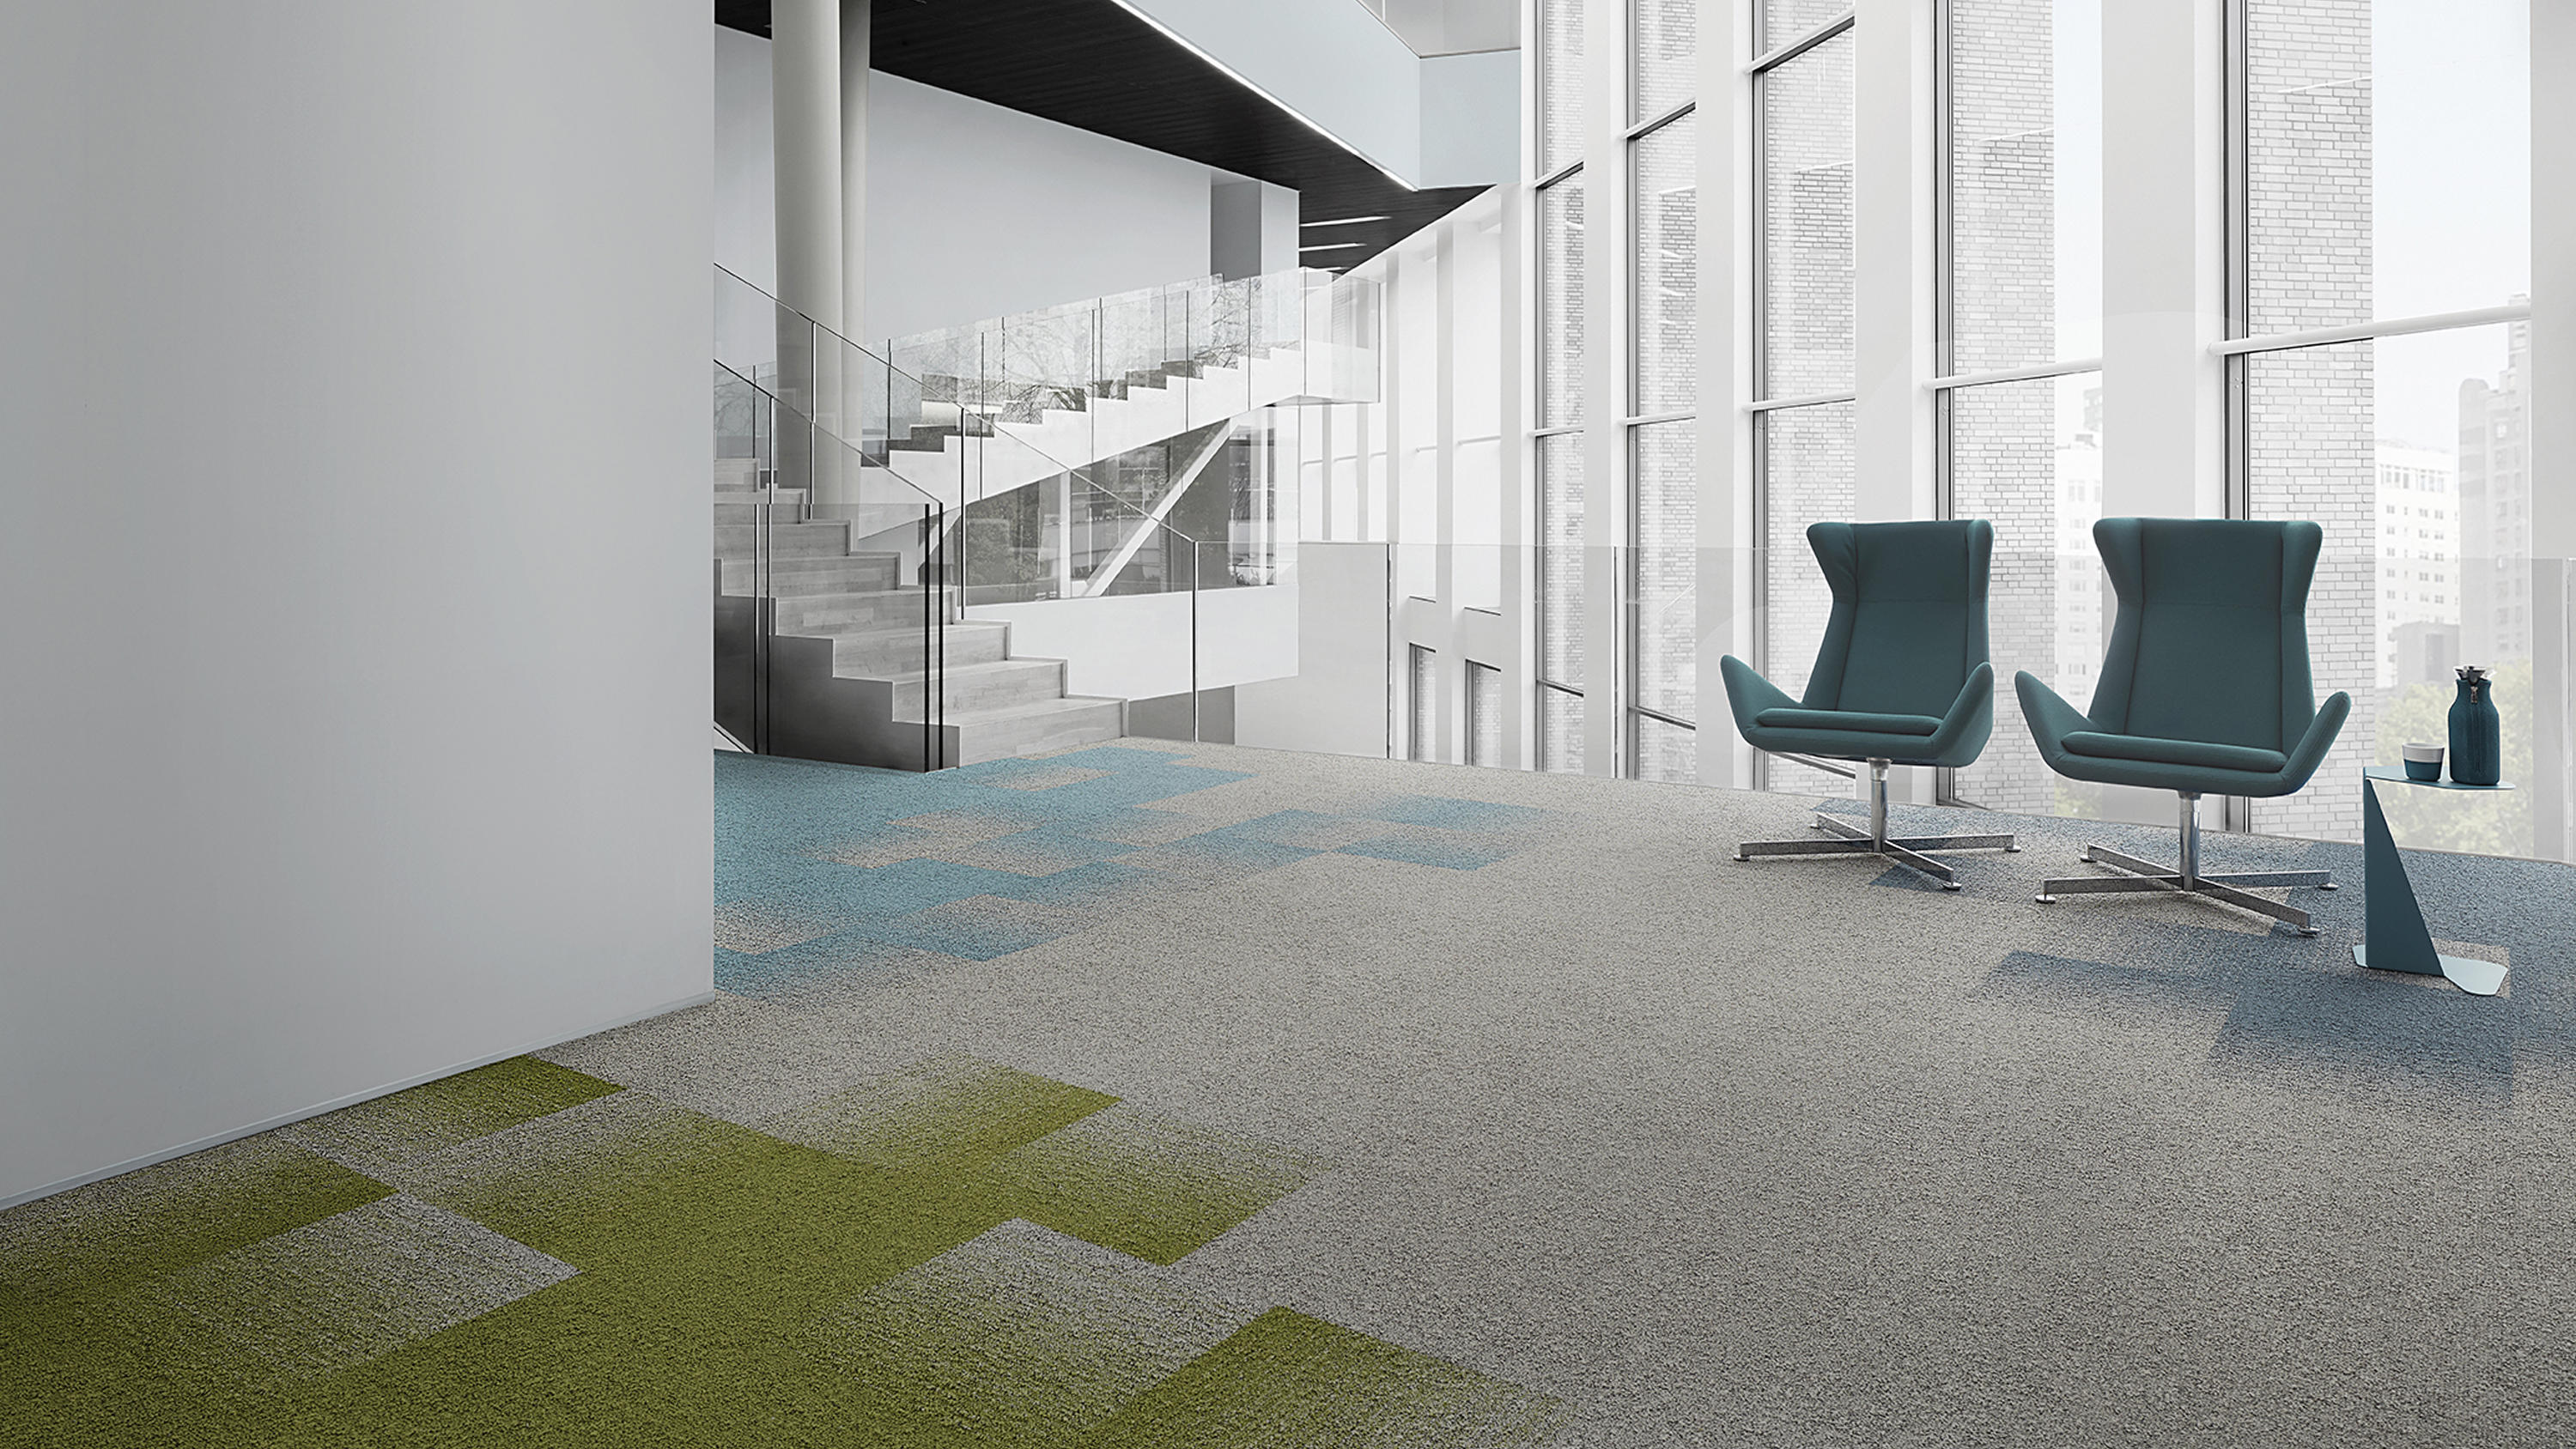 Tarkett Holding Gmbh Desso Fuse Carpet Tiles | Interiorpark.